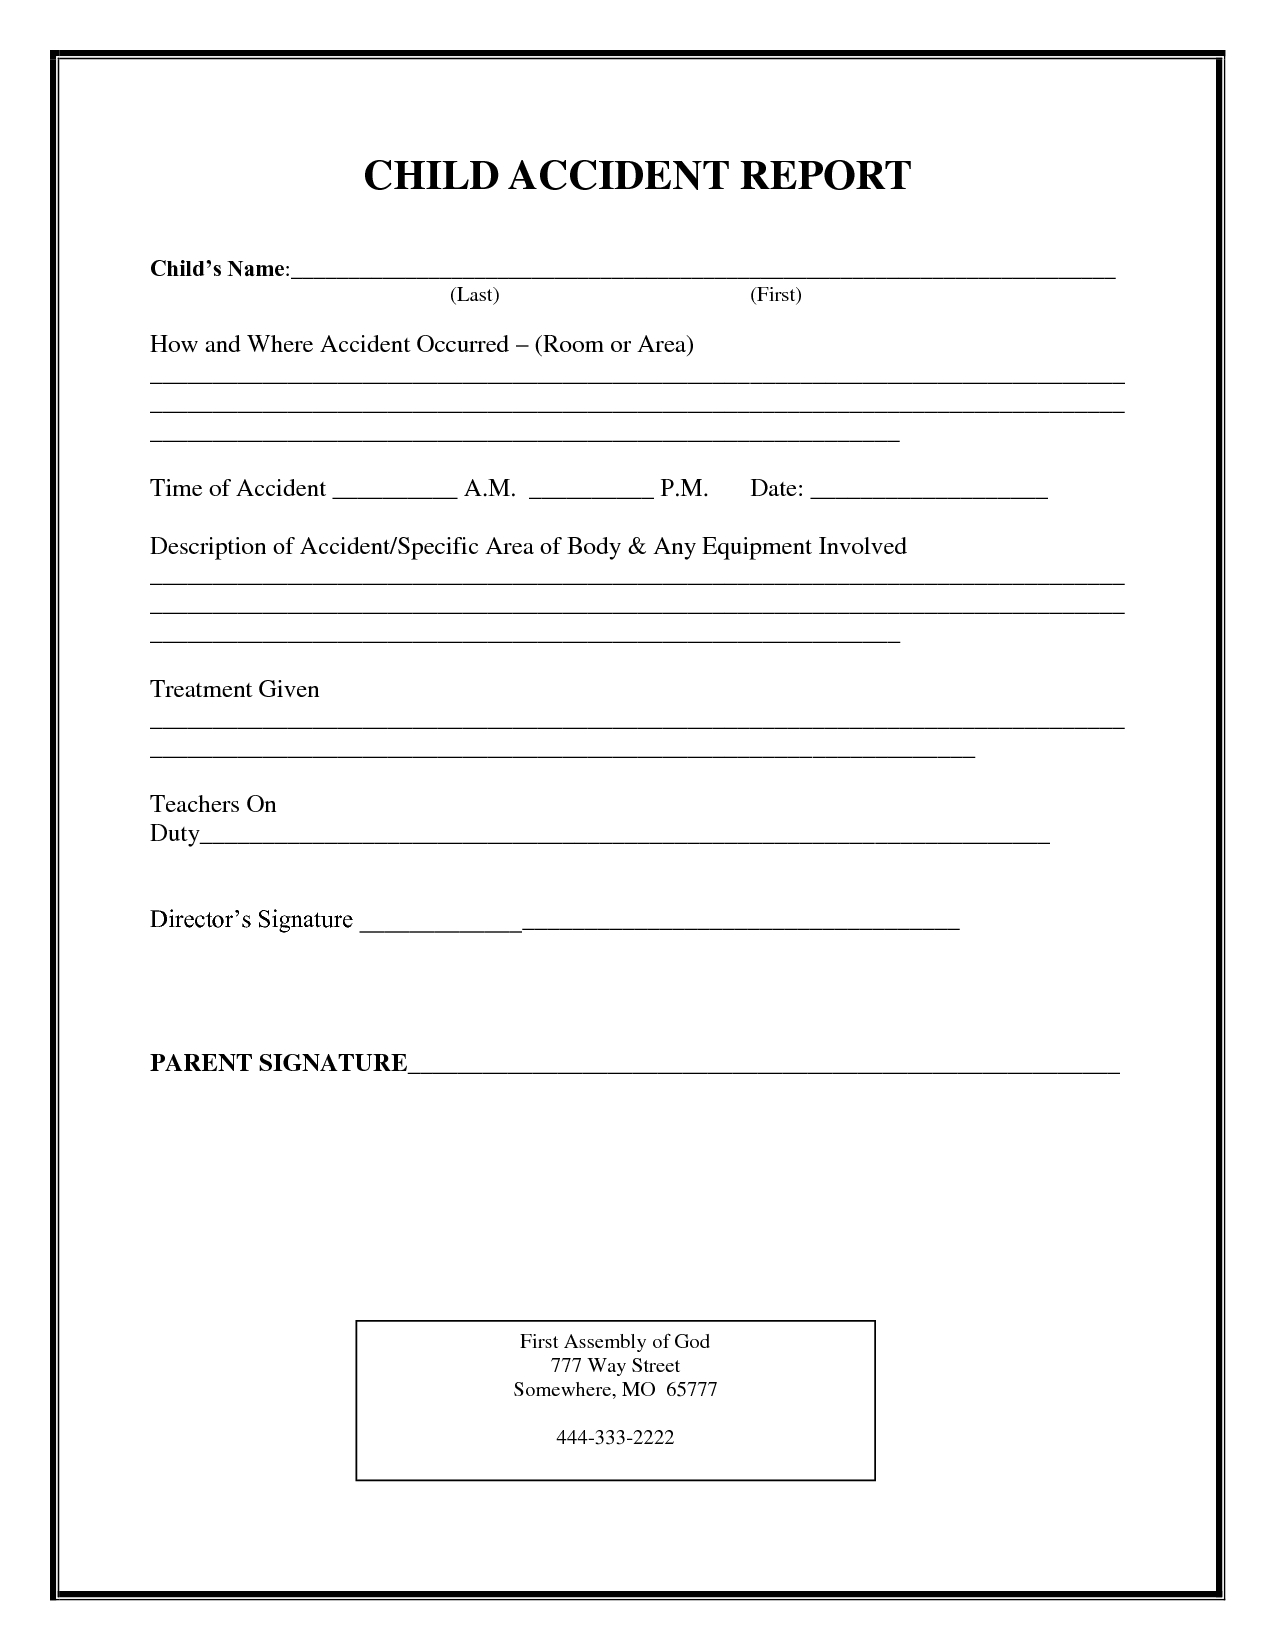 Incident Report Form Child Care | Child Accident Report within Printable Children's Church Sign In Sheet Template